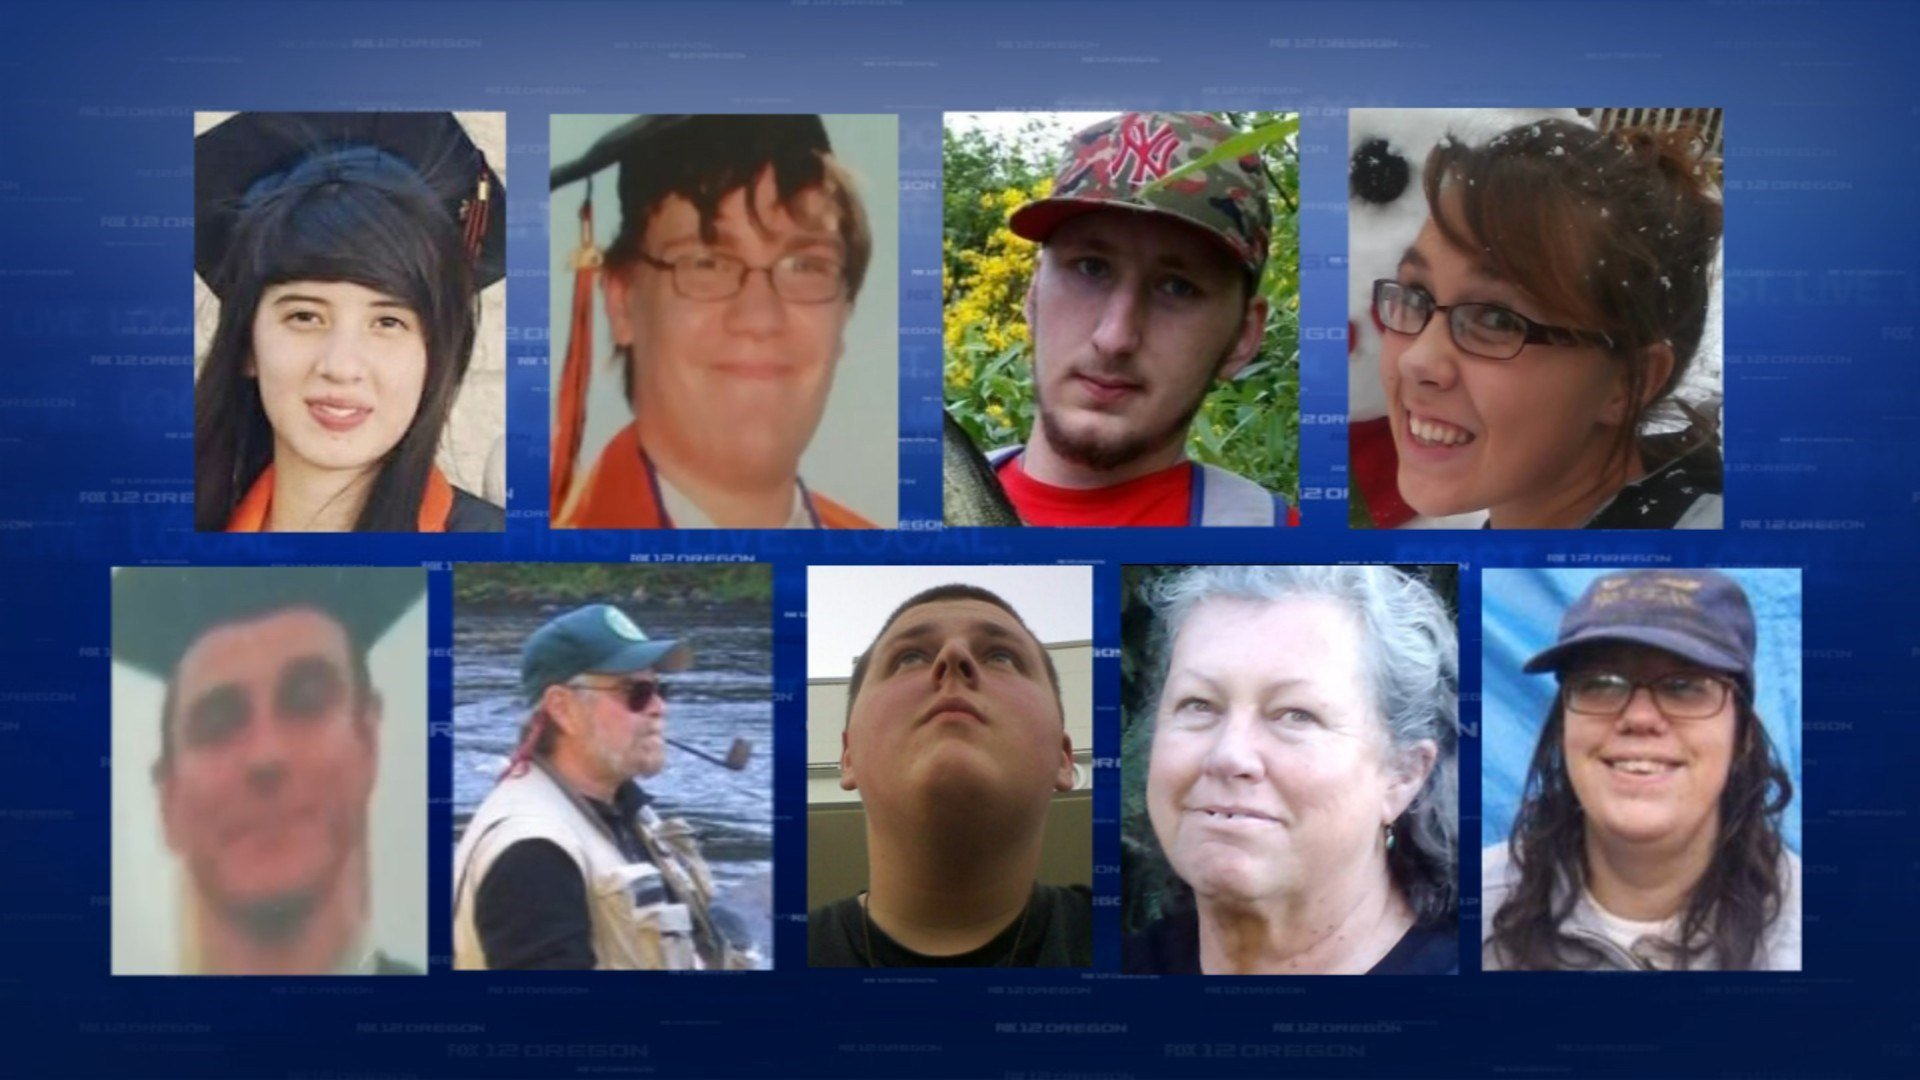 (Top row from left to right) Lucero Alcaraz, Lucas Eibel, Rebecka Carnes and Treven Anspach. (Bottom row from left to right) Jason Johnson, Lawrence Levine, Quinn Cooper, Kim Dietz and Sarena Moore.